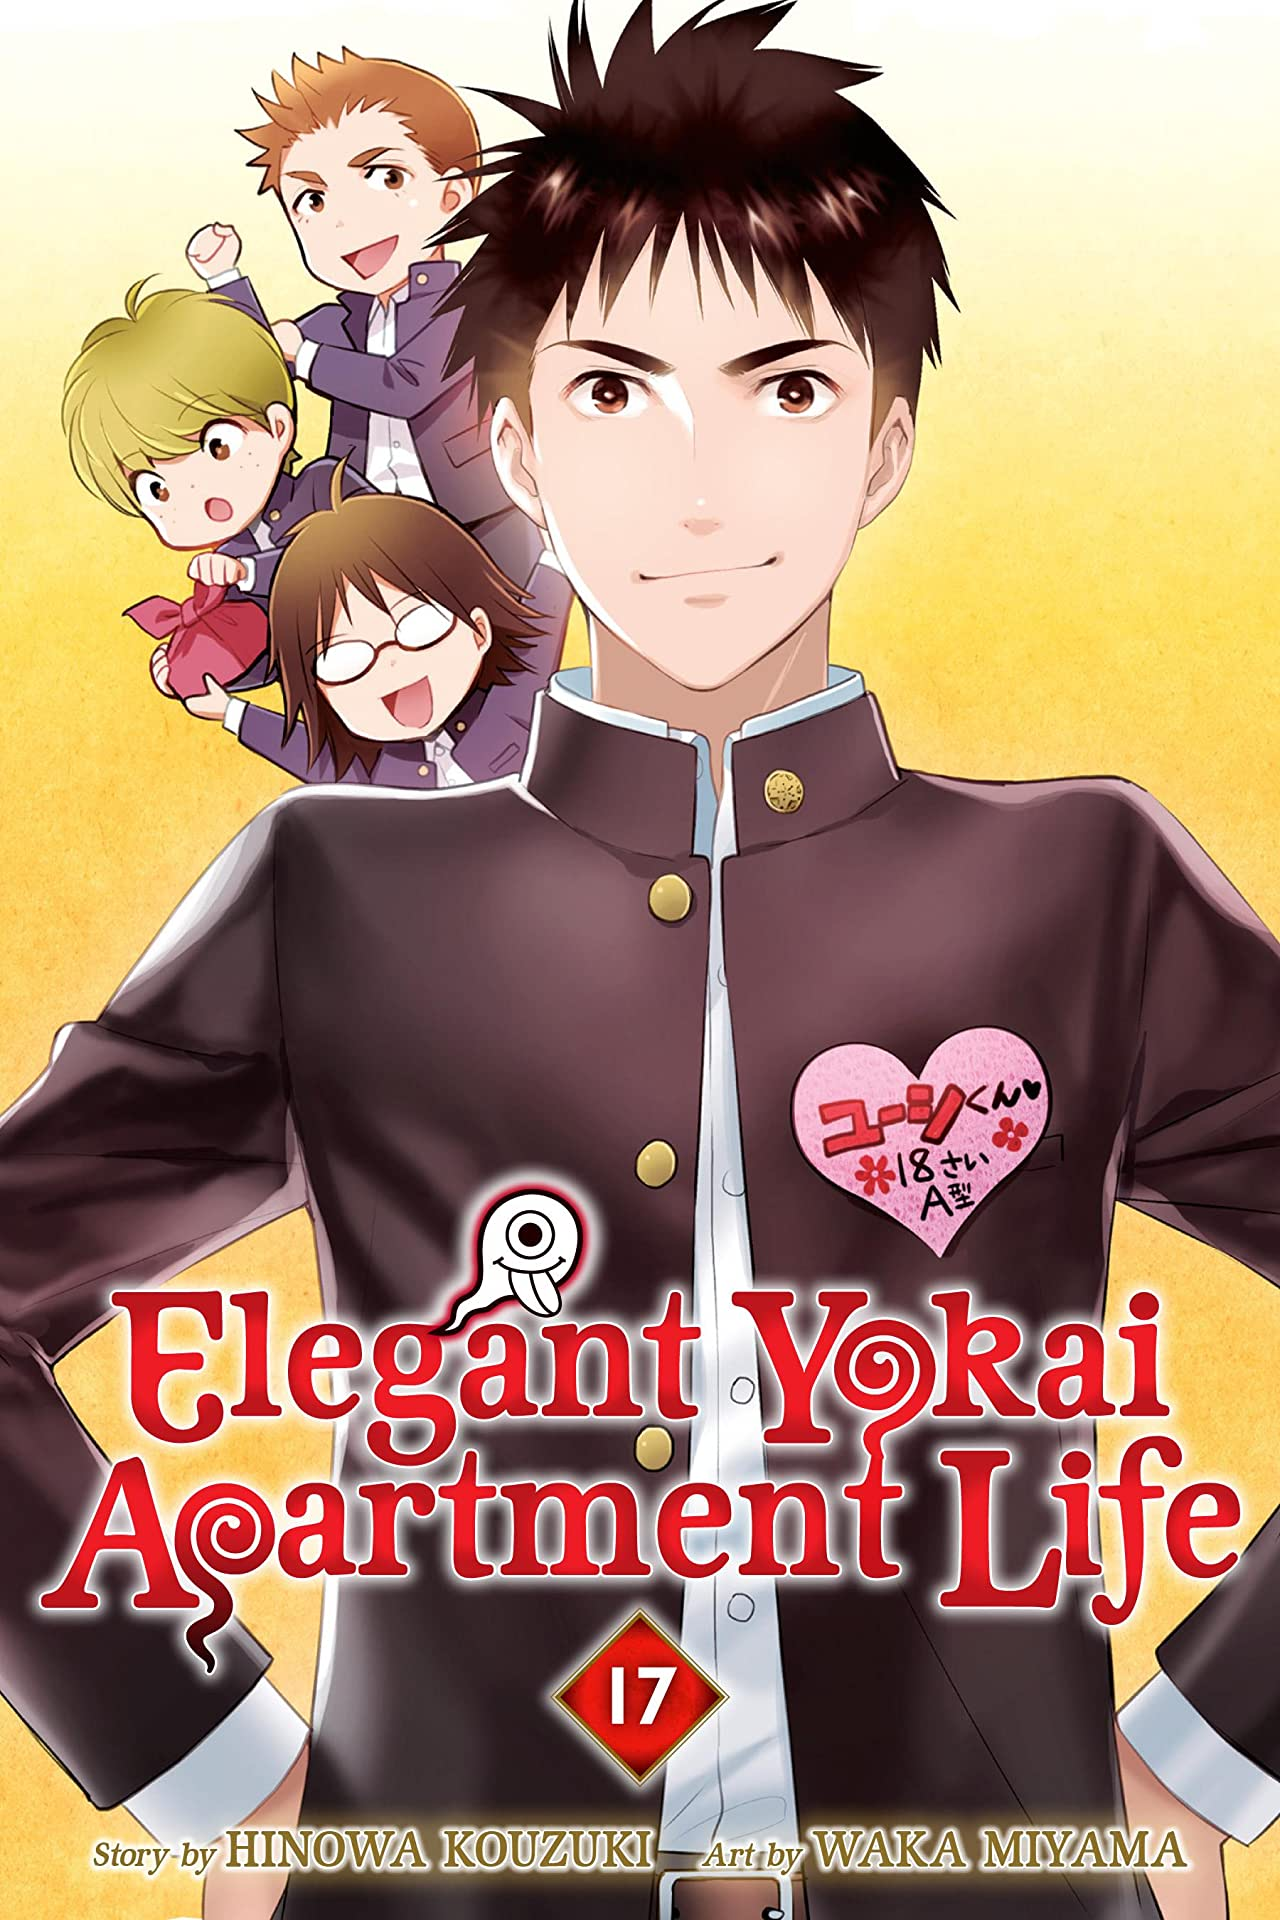 Elegant Yokai Apartment Life Vol. 17